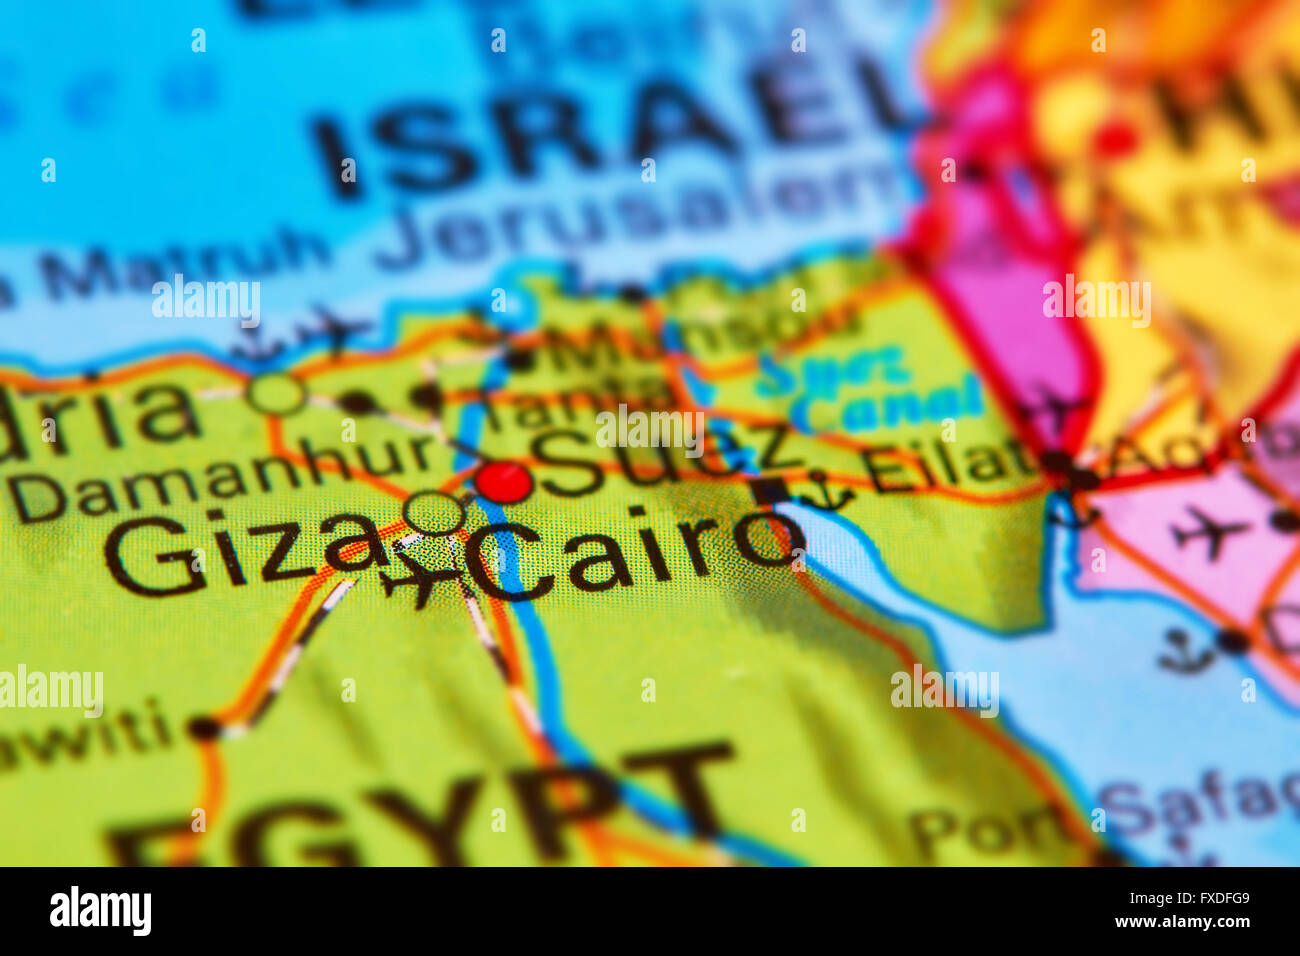 Image of: Cairo Capital City Of Egypt In Africa On The World Map Stock Photo Alamy